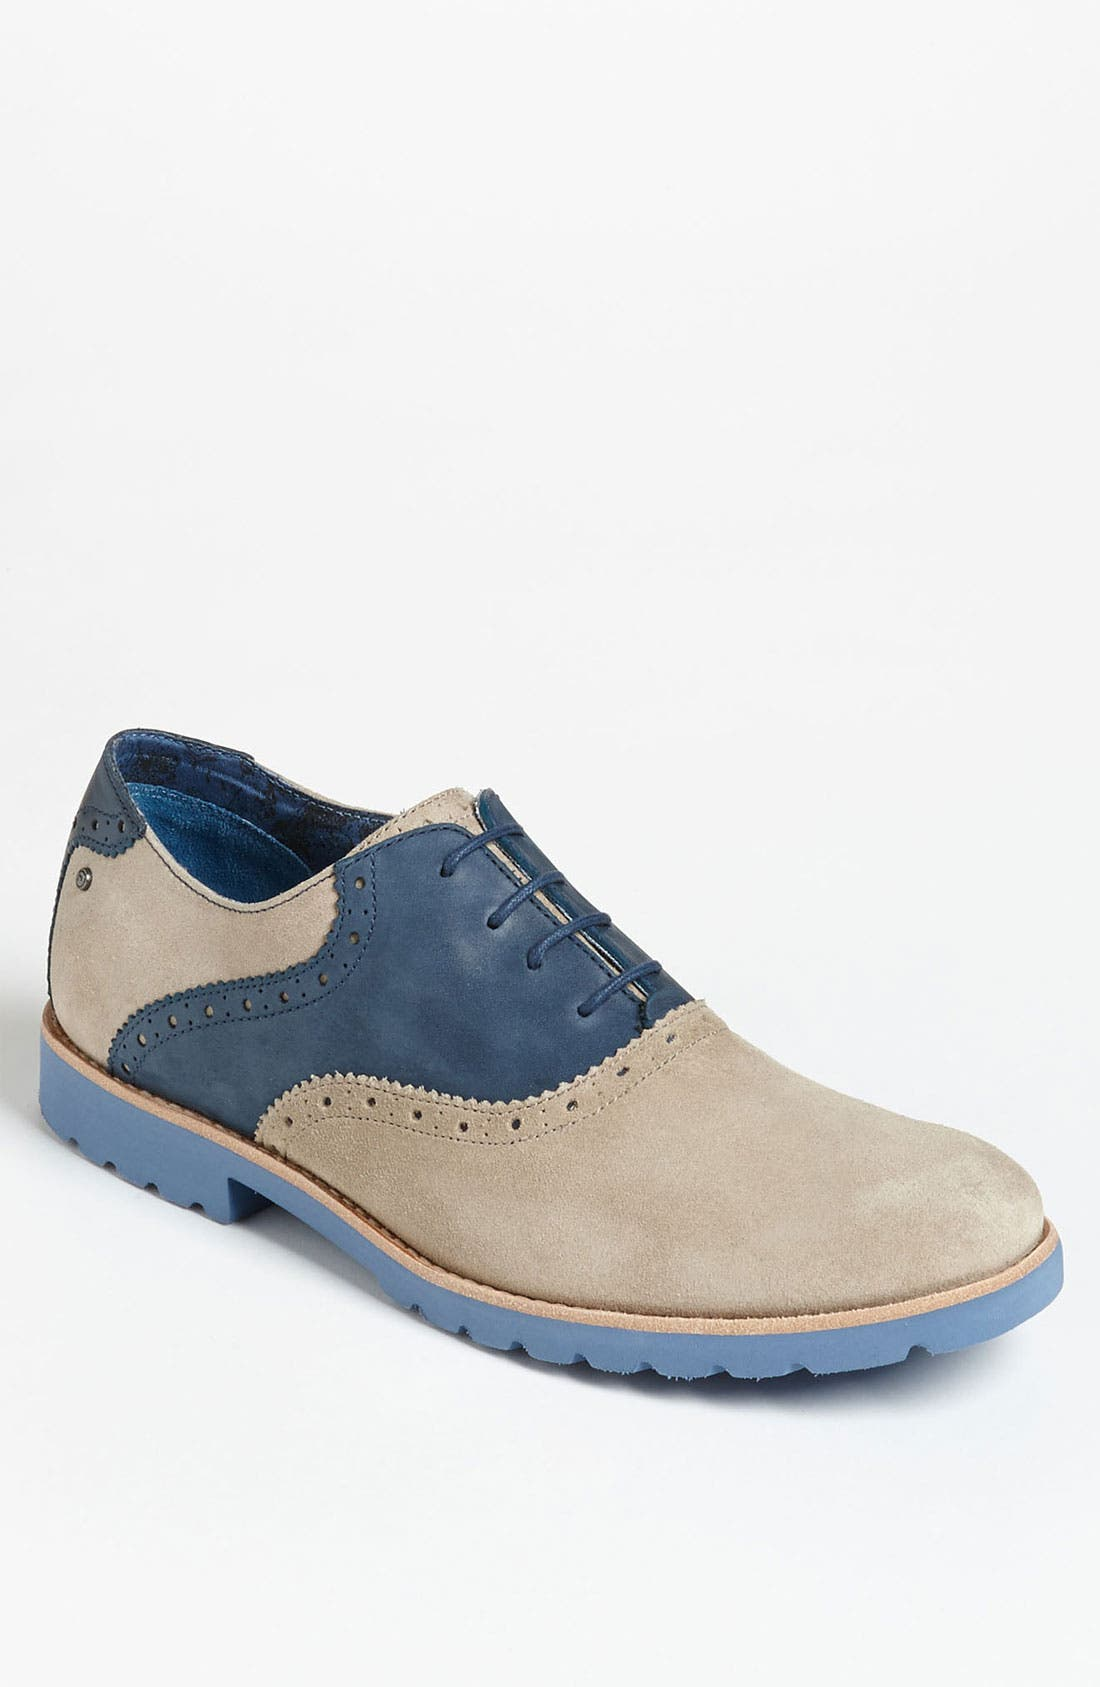 Main Image - Rockport 'Ledge Hill' Saddle Shoe